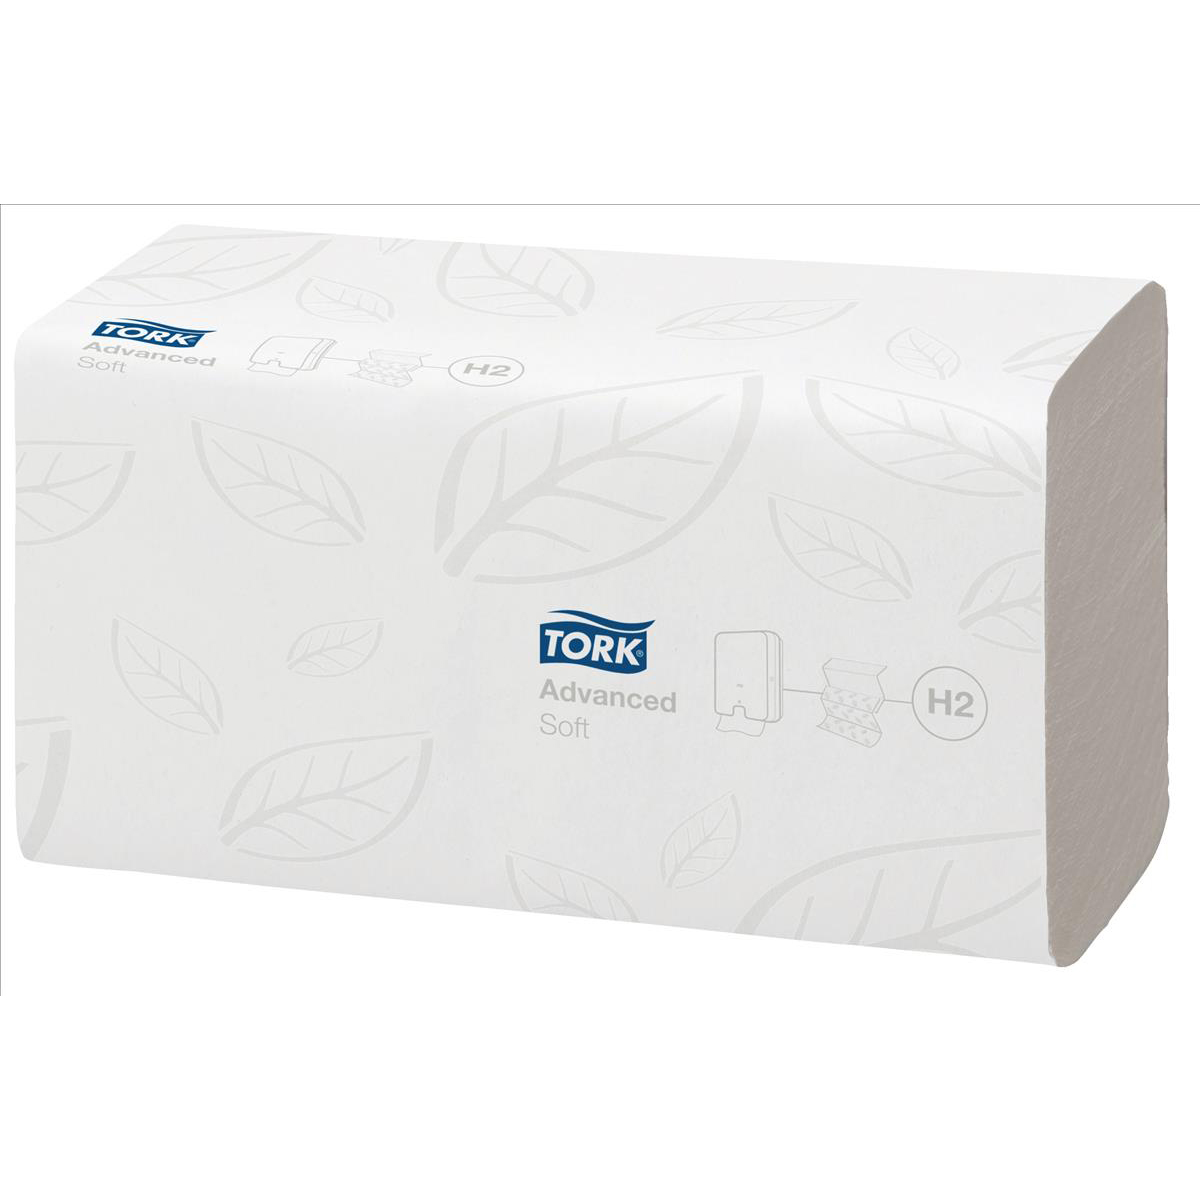 Tork Xpress Advanced Soft Hand Towel Multifold 2 Ply White 180 Sheets Per Stack [Pack 21] Ref 120289